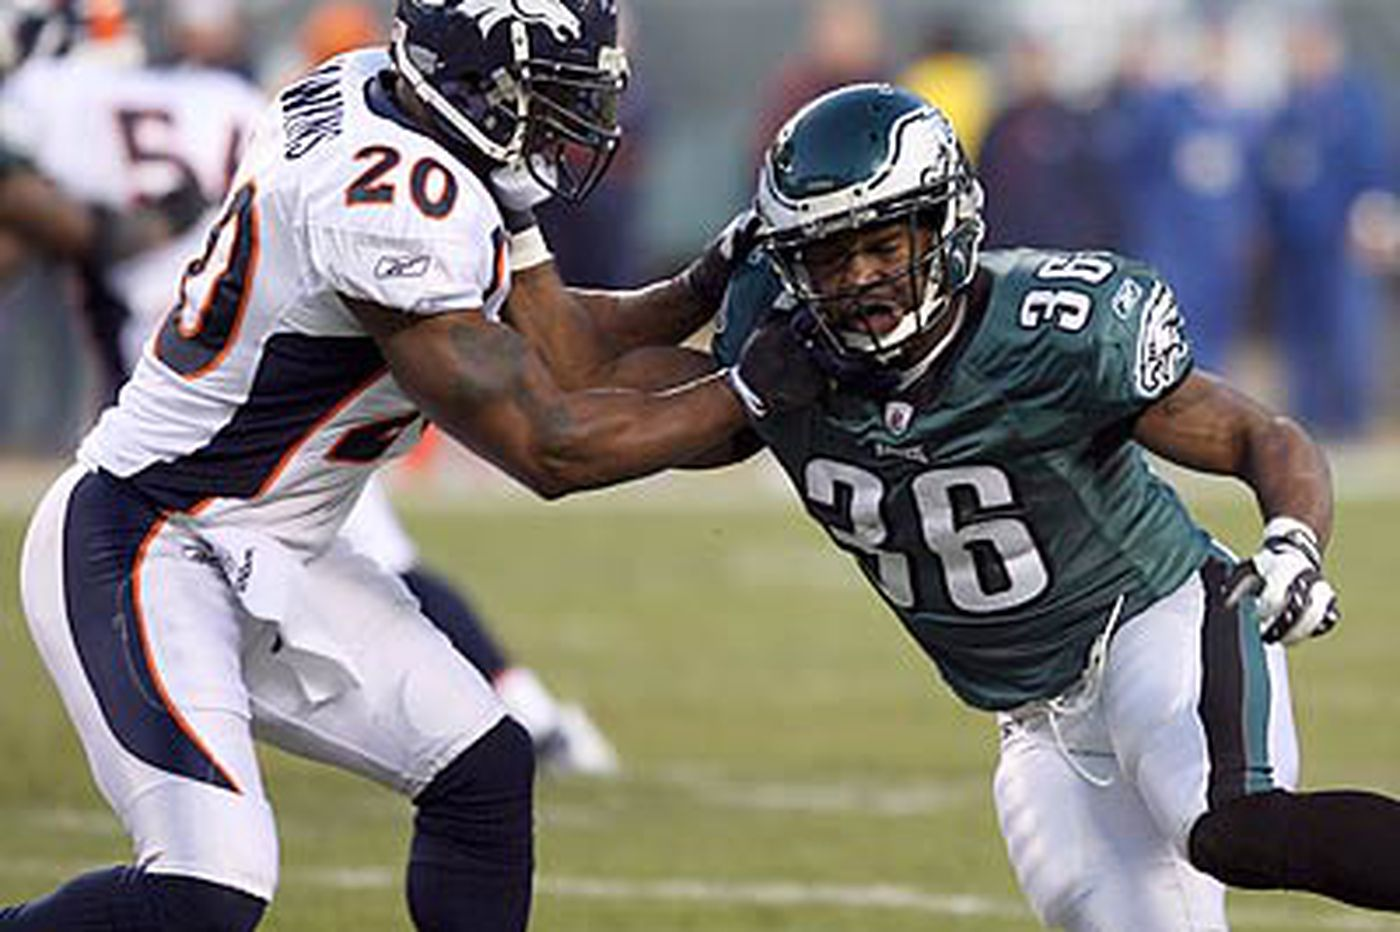 Eagles' Westbrook says ankle no cause for concern